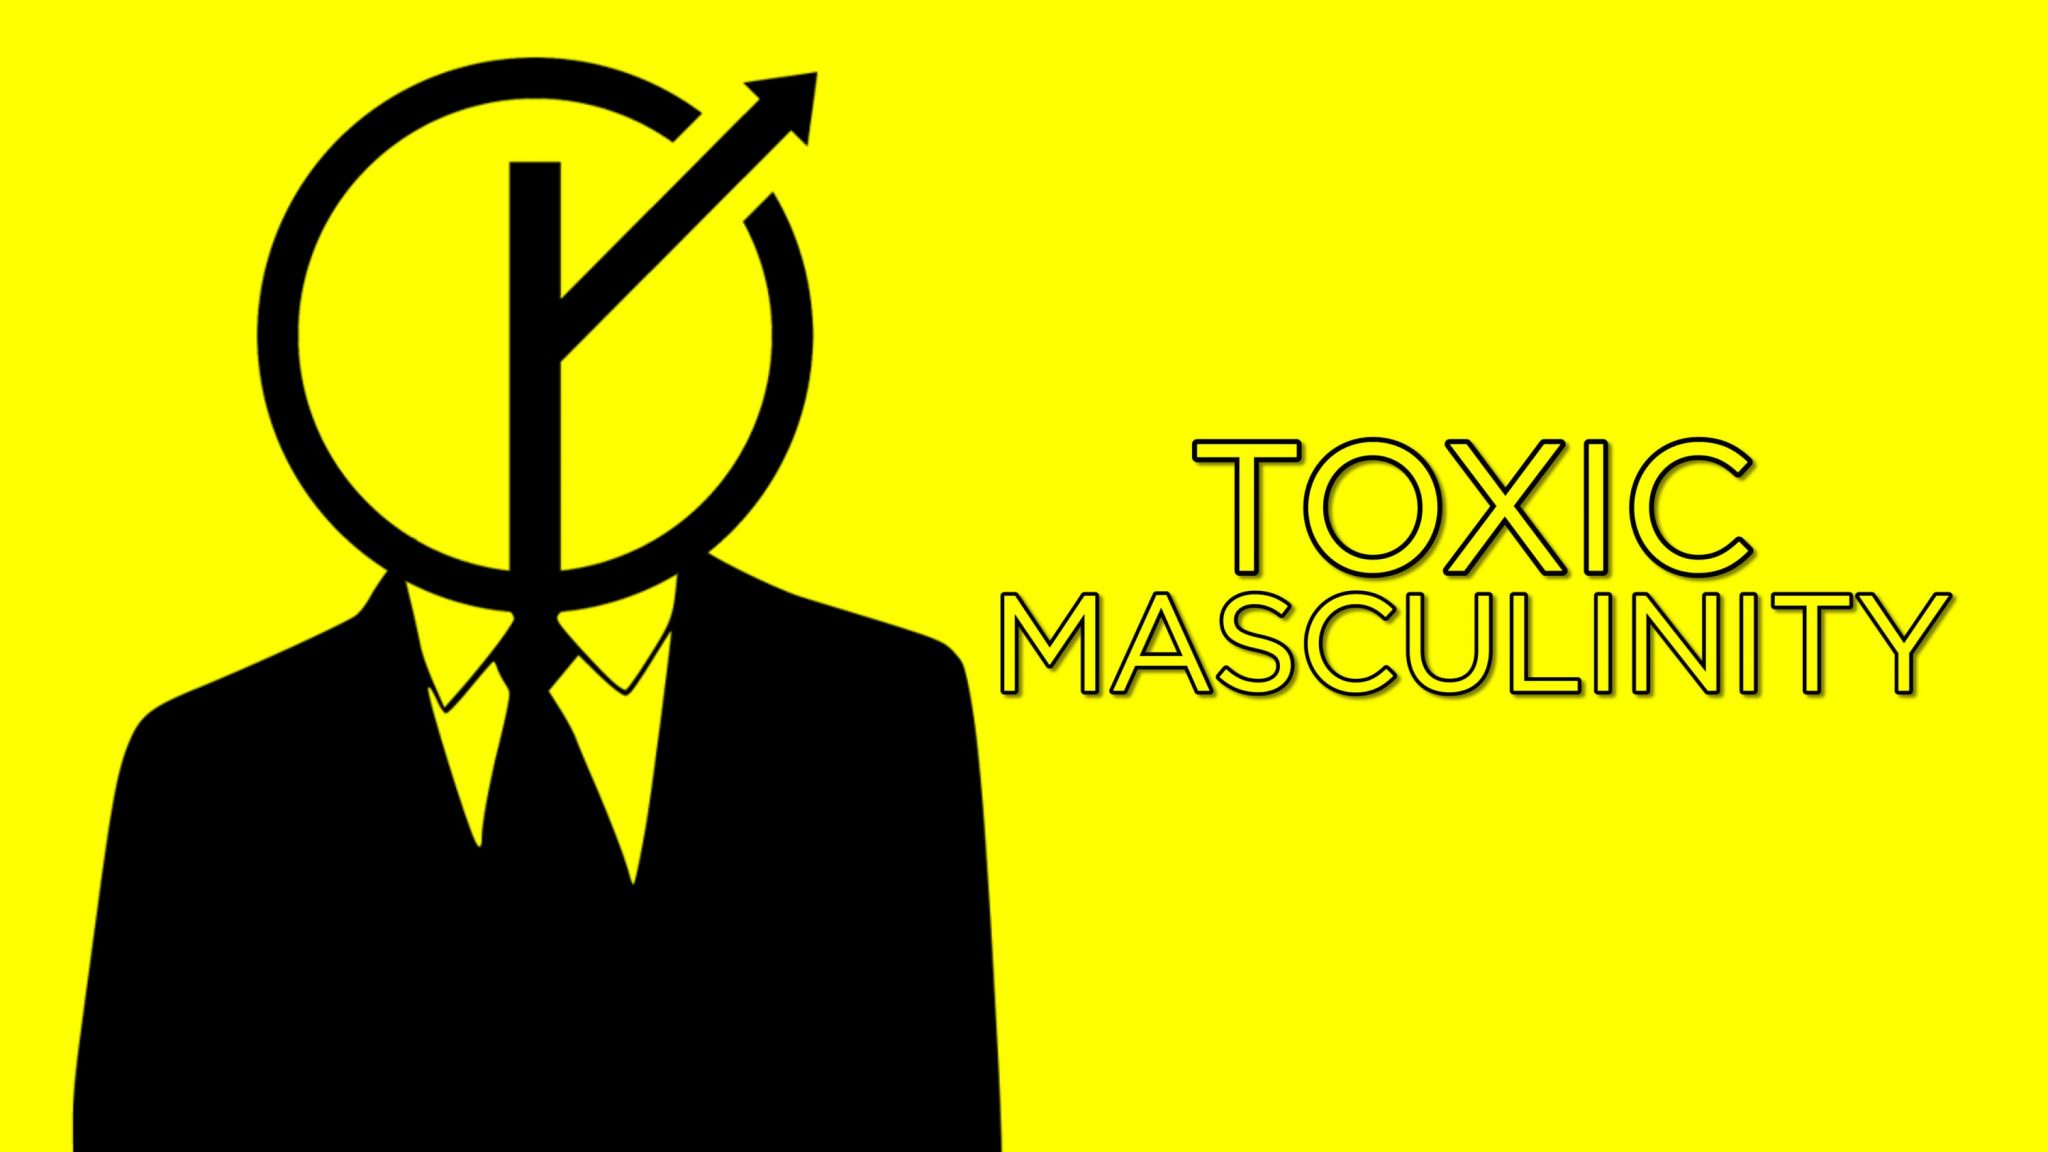 What Does toxic masculinity Mean? | Pop Culture by